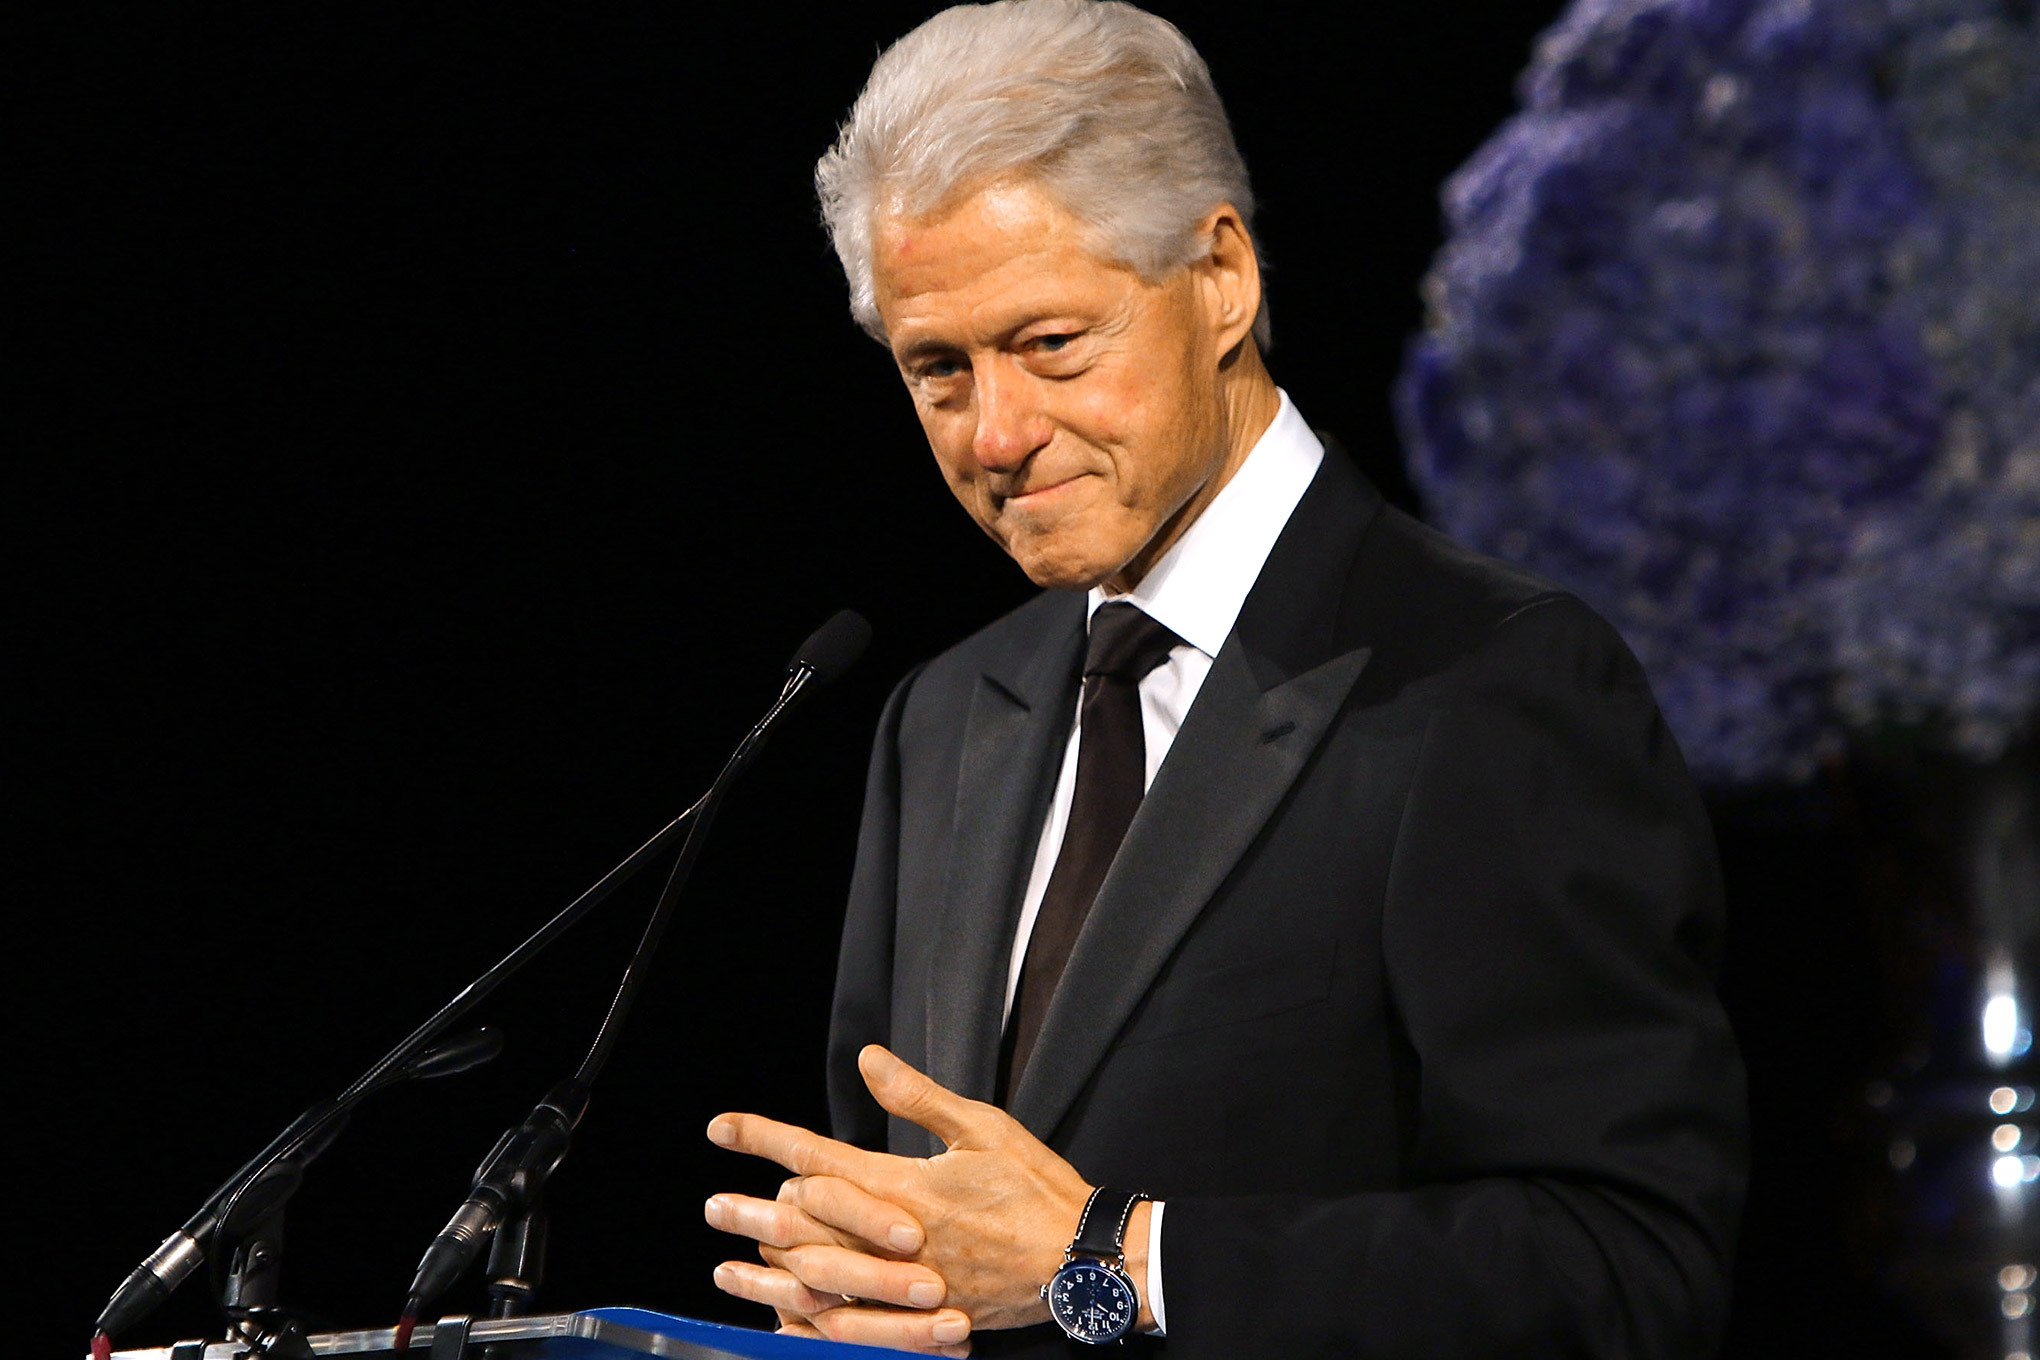 Bill Clinton Hd Background